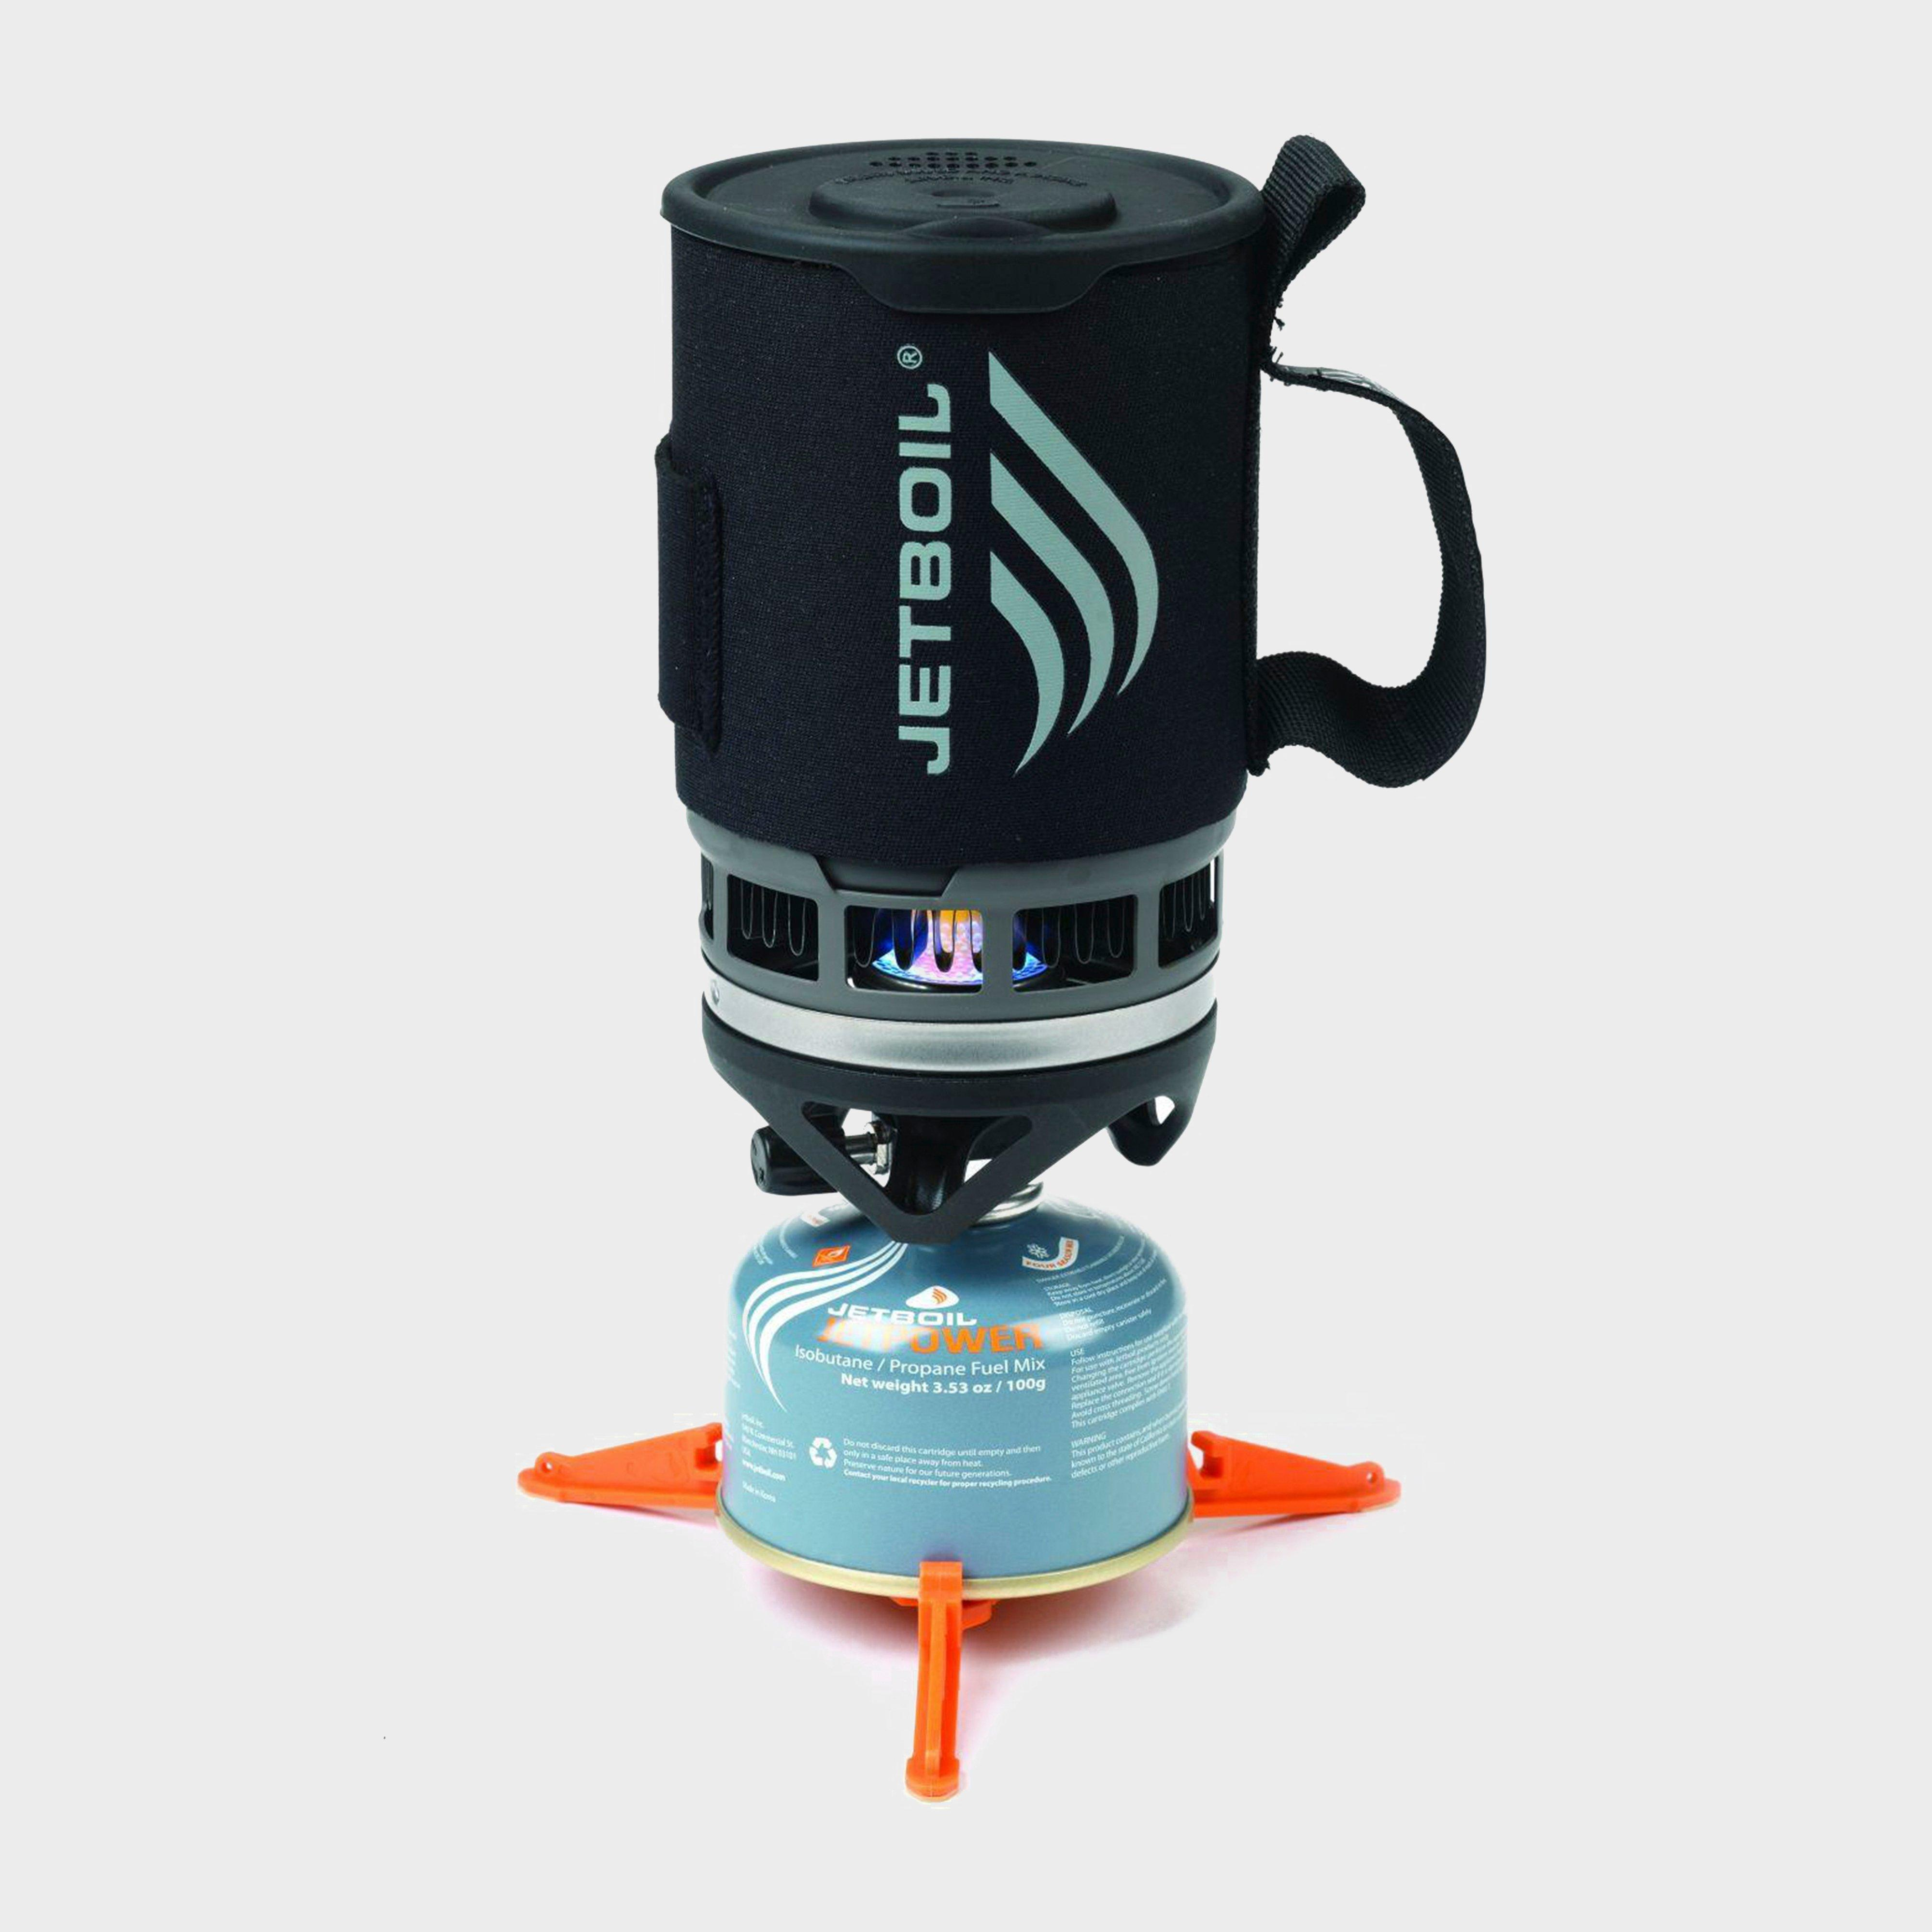 Jetboil ZiP Cooking System Black